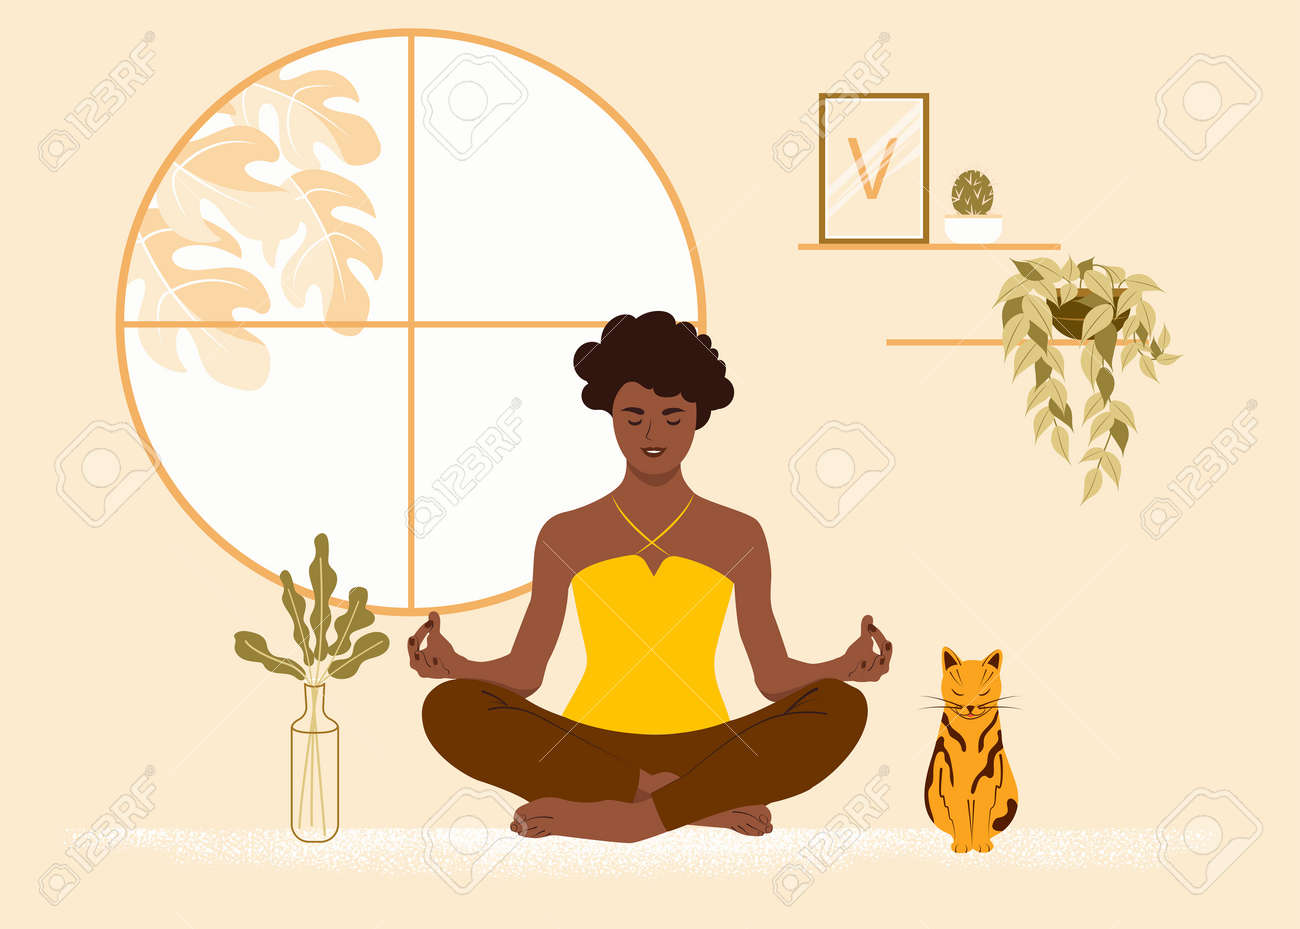 African American girl sits in the lotus position at home with her cat. The woman is engaged in yoga, meditation. Flat vector illustration - 167806883